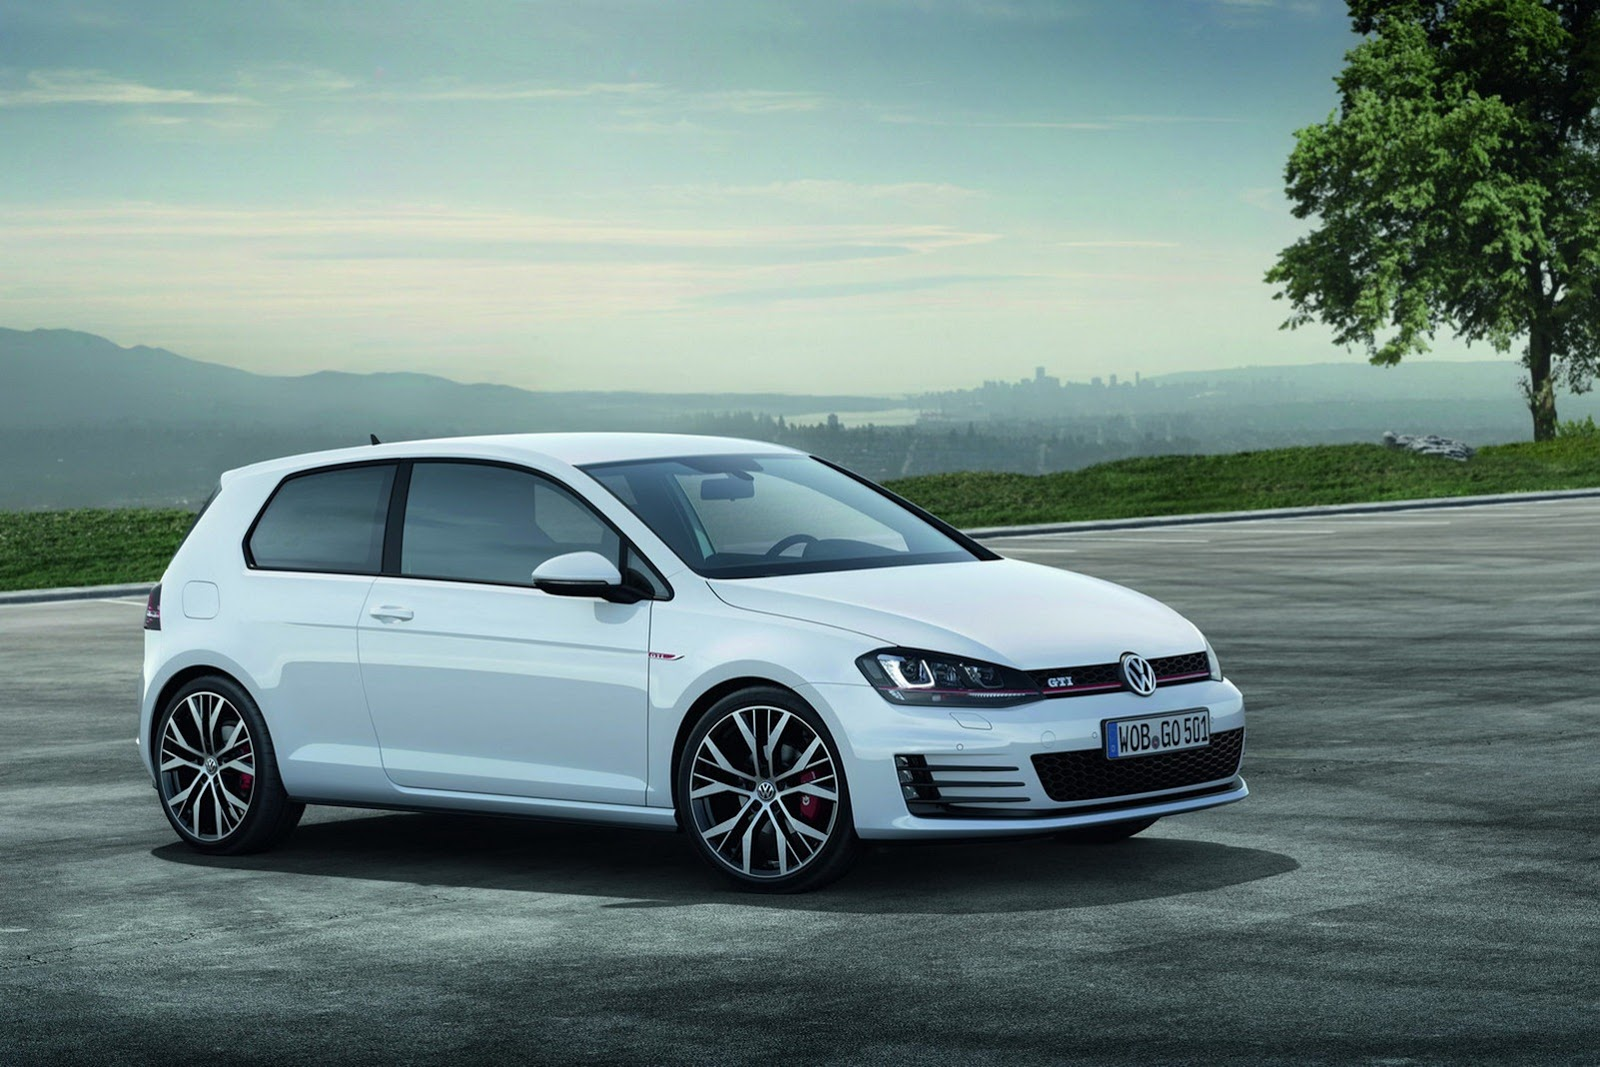 volkswagen cars news 2013 mk golf gti officially revealed. Black Bedroom Furniture Sets. Home Design Ideas